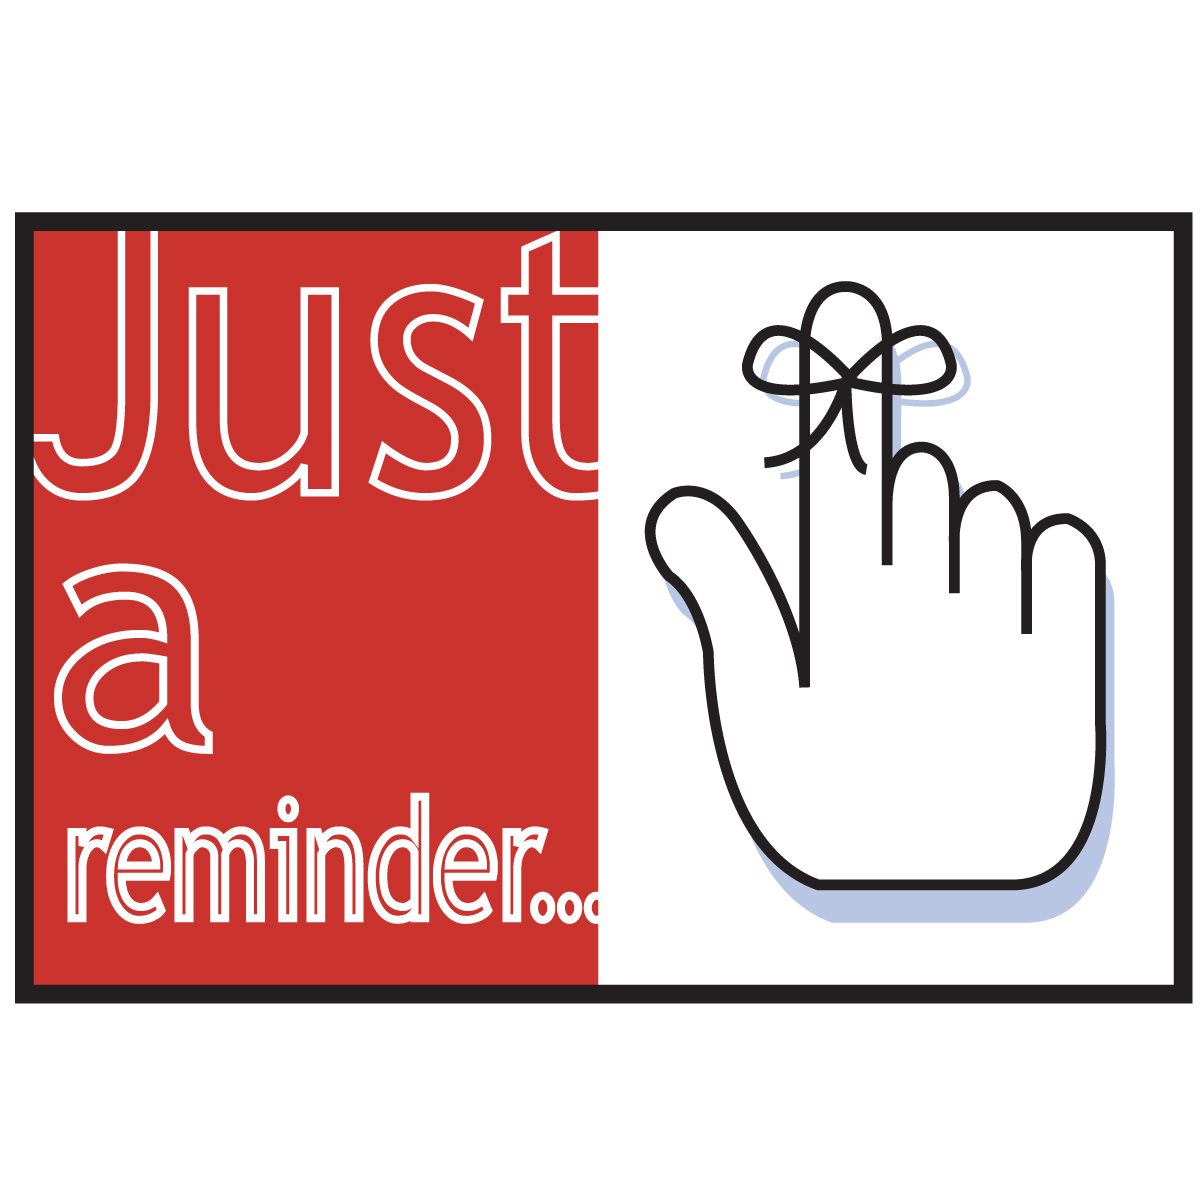 Just A Reminder Clipart